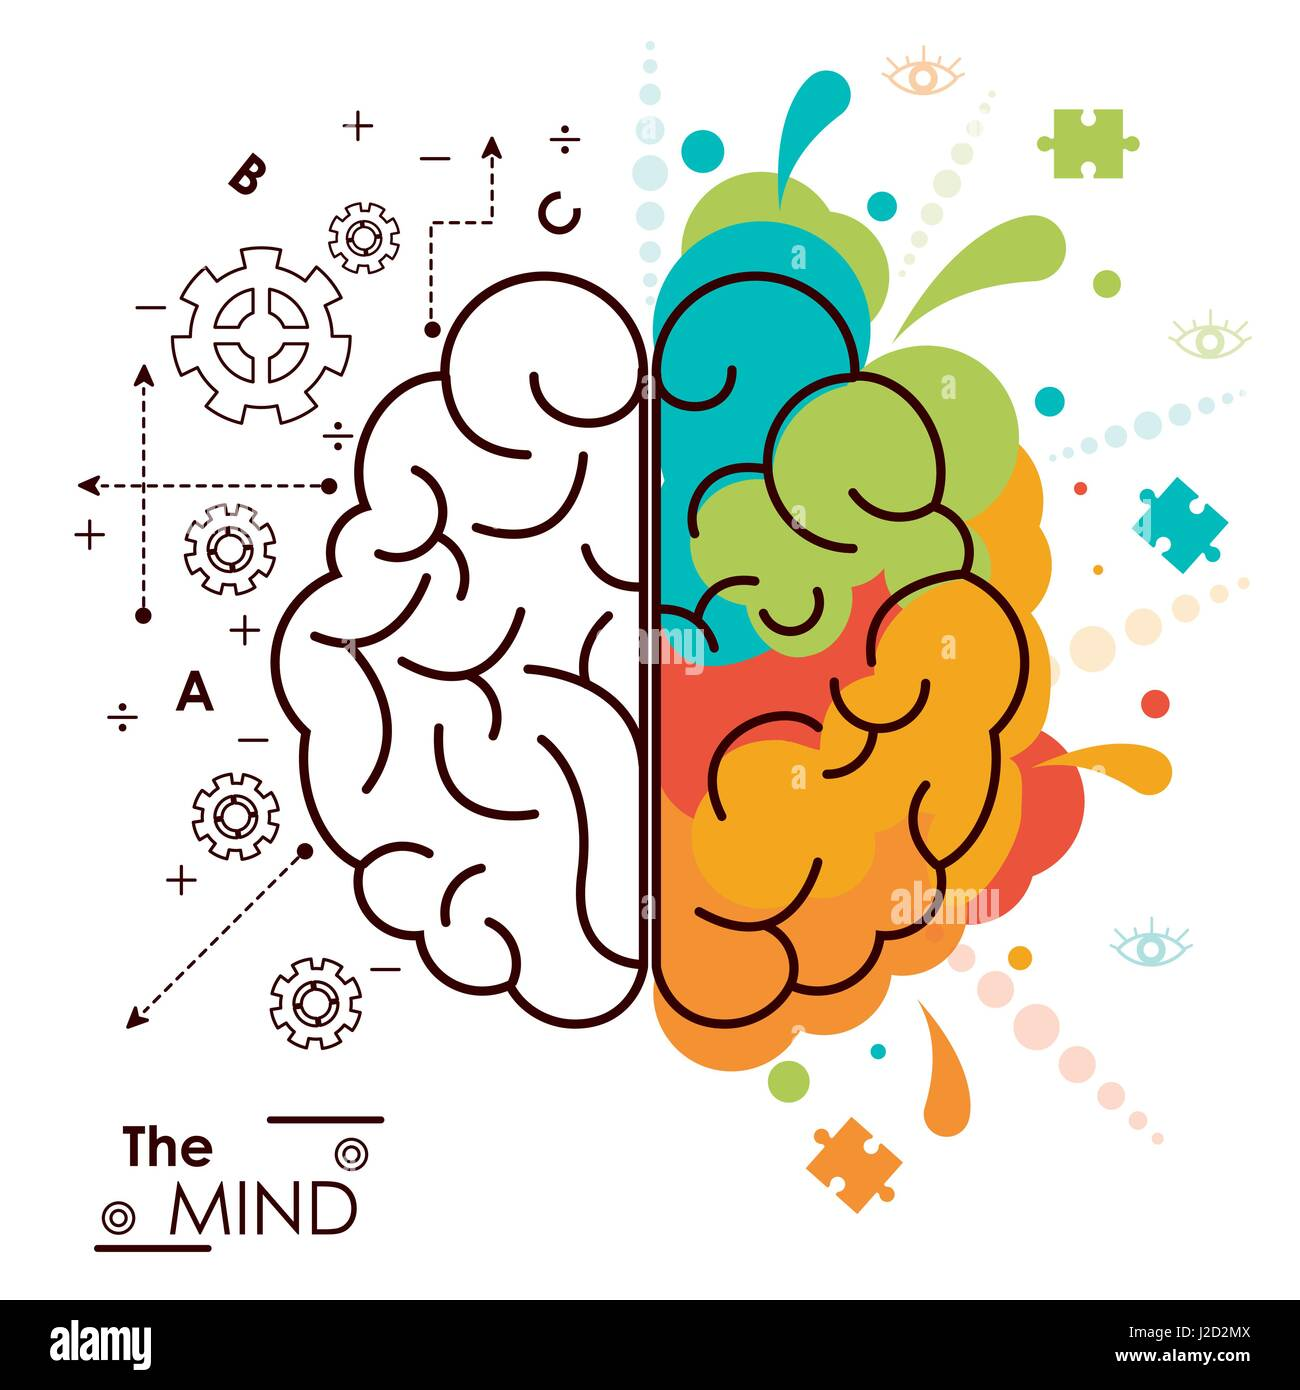 the mind brain human functions left right design - Stock Image